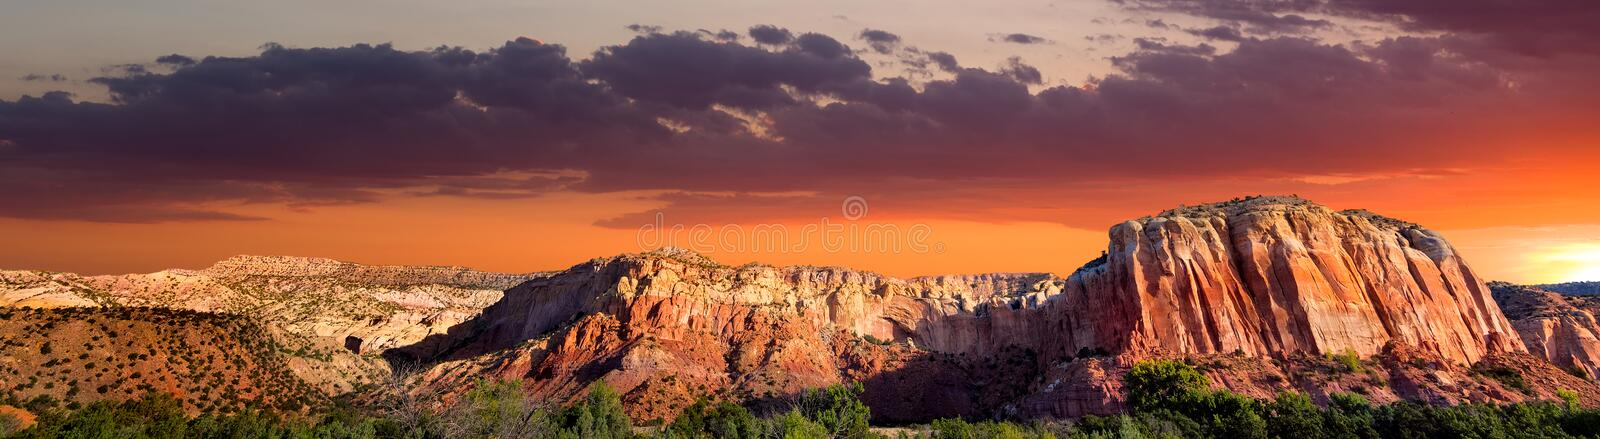 Sunset at Ghost Ranch royalty free stock photos